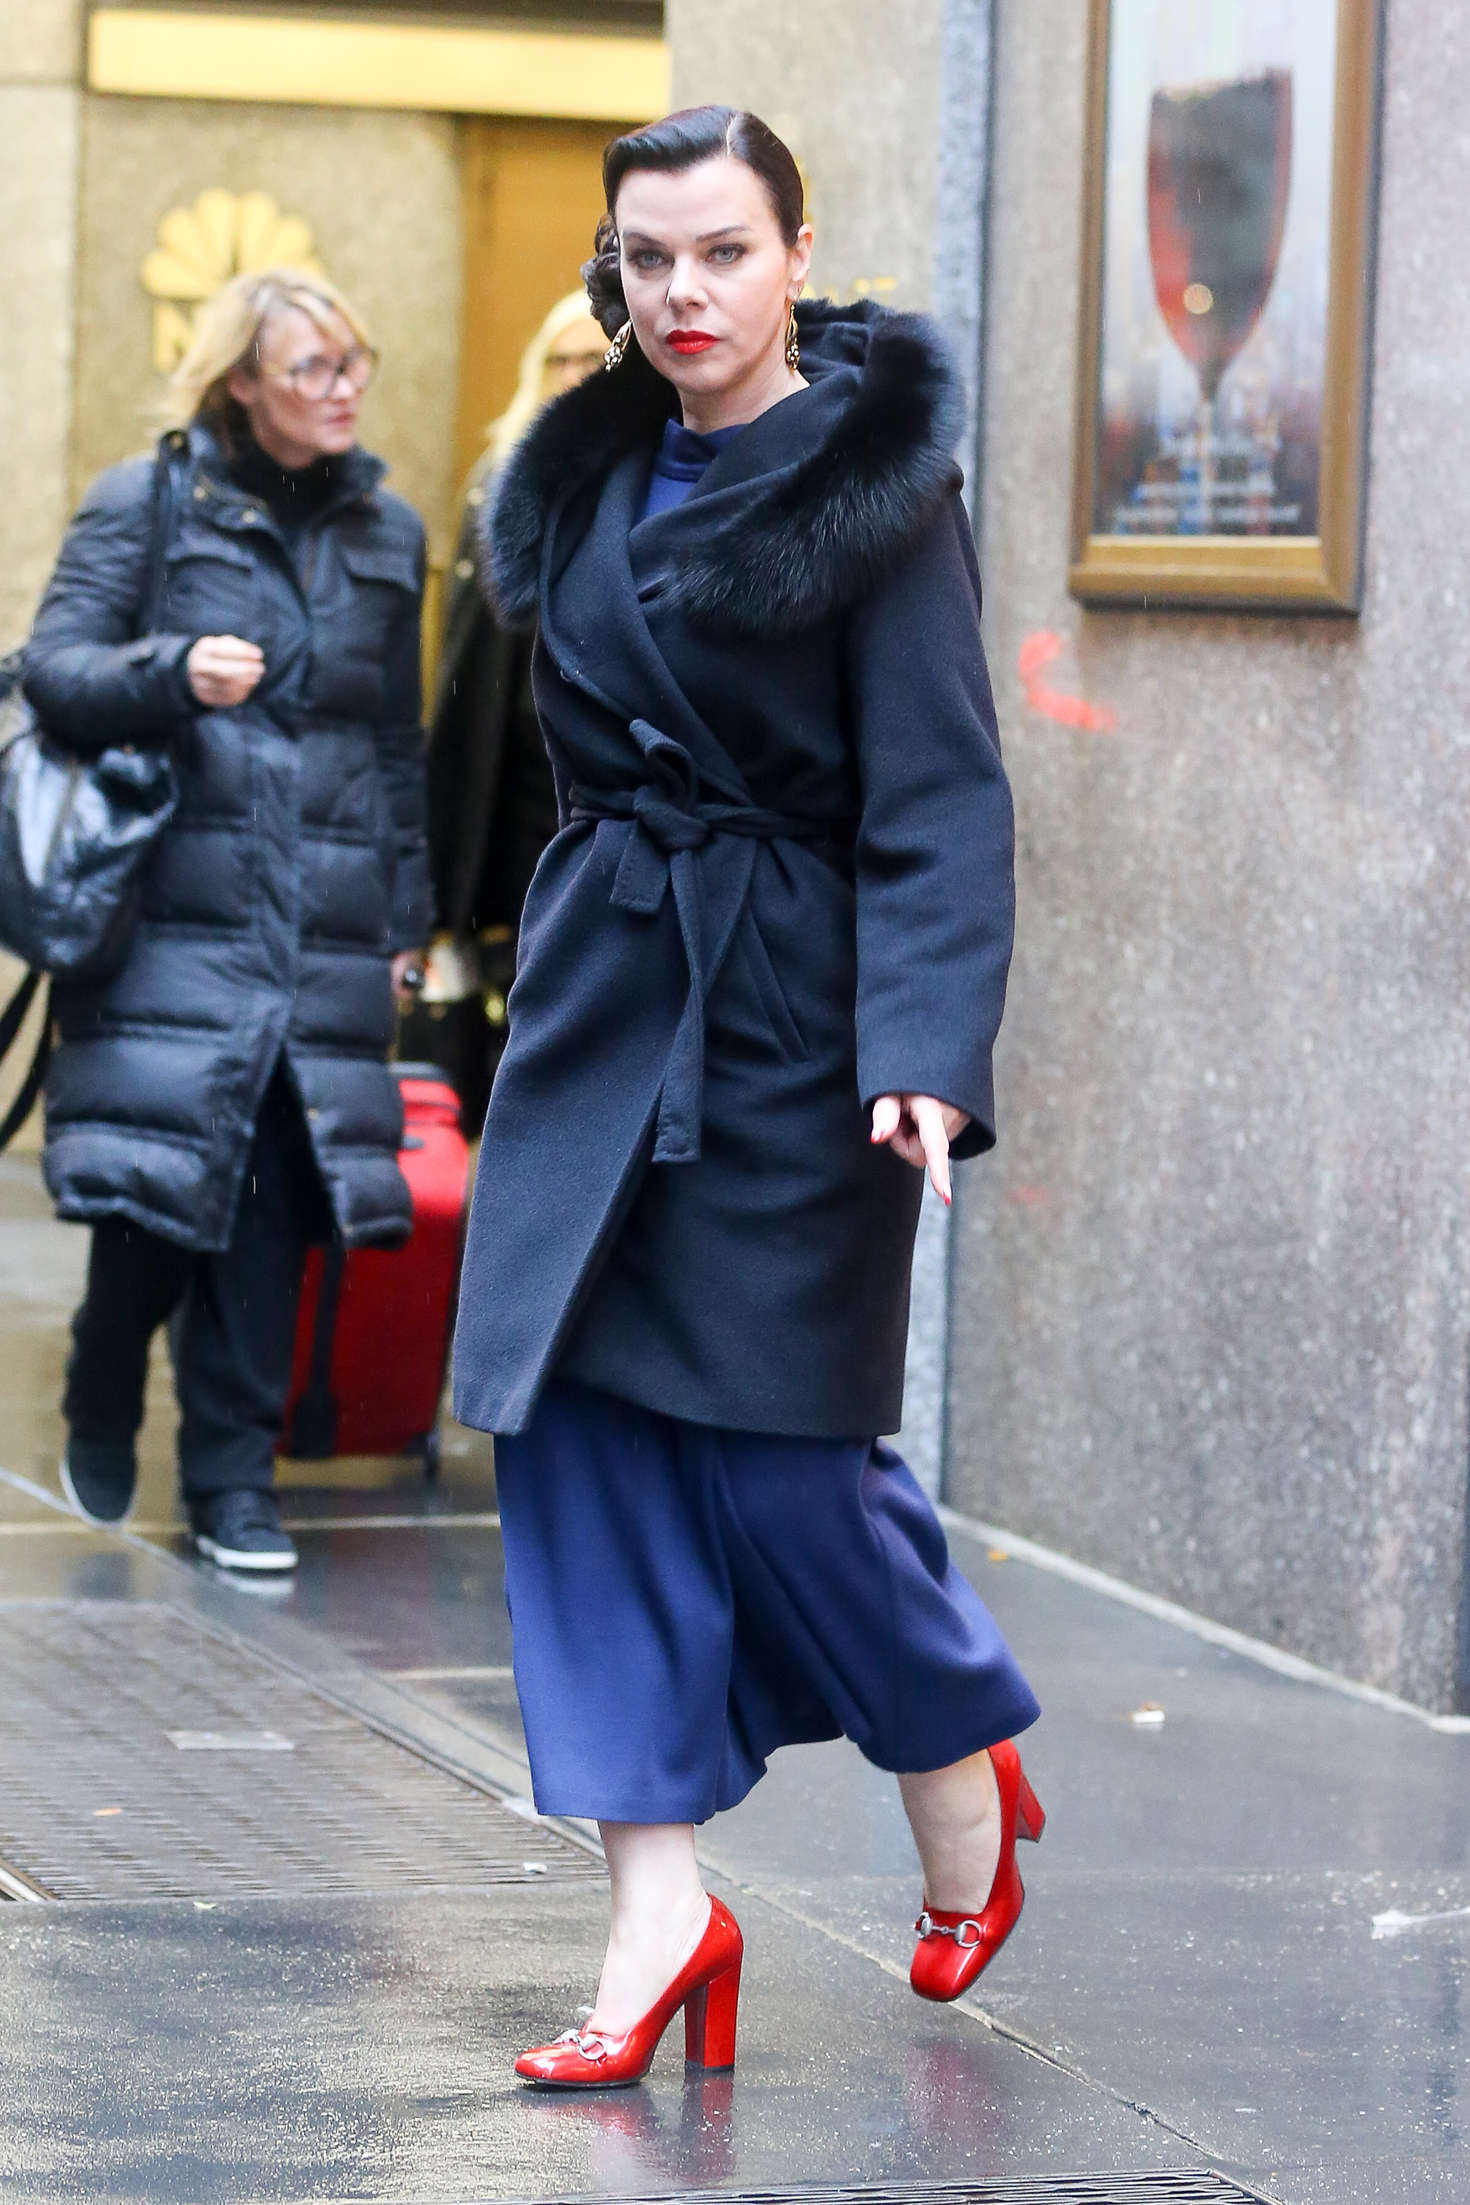 Debi Mazar Leaving the NBC Studios in New York City